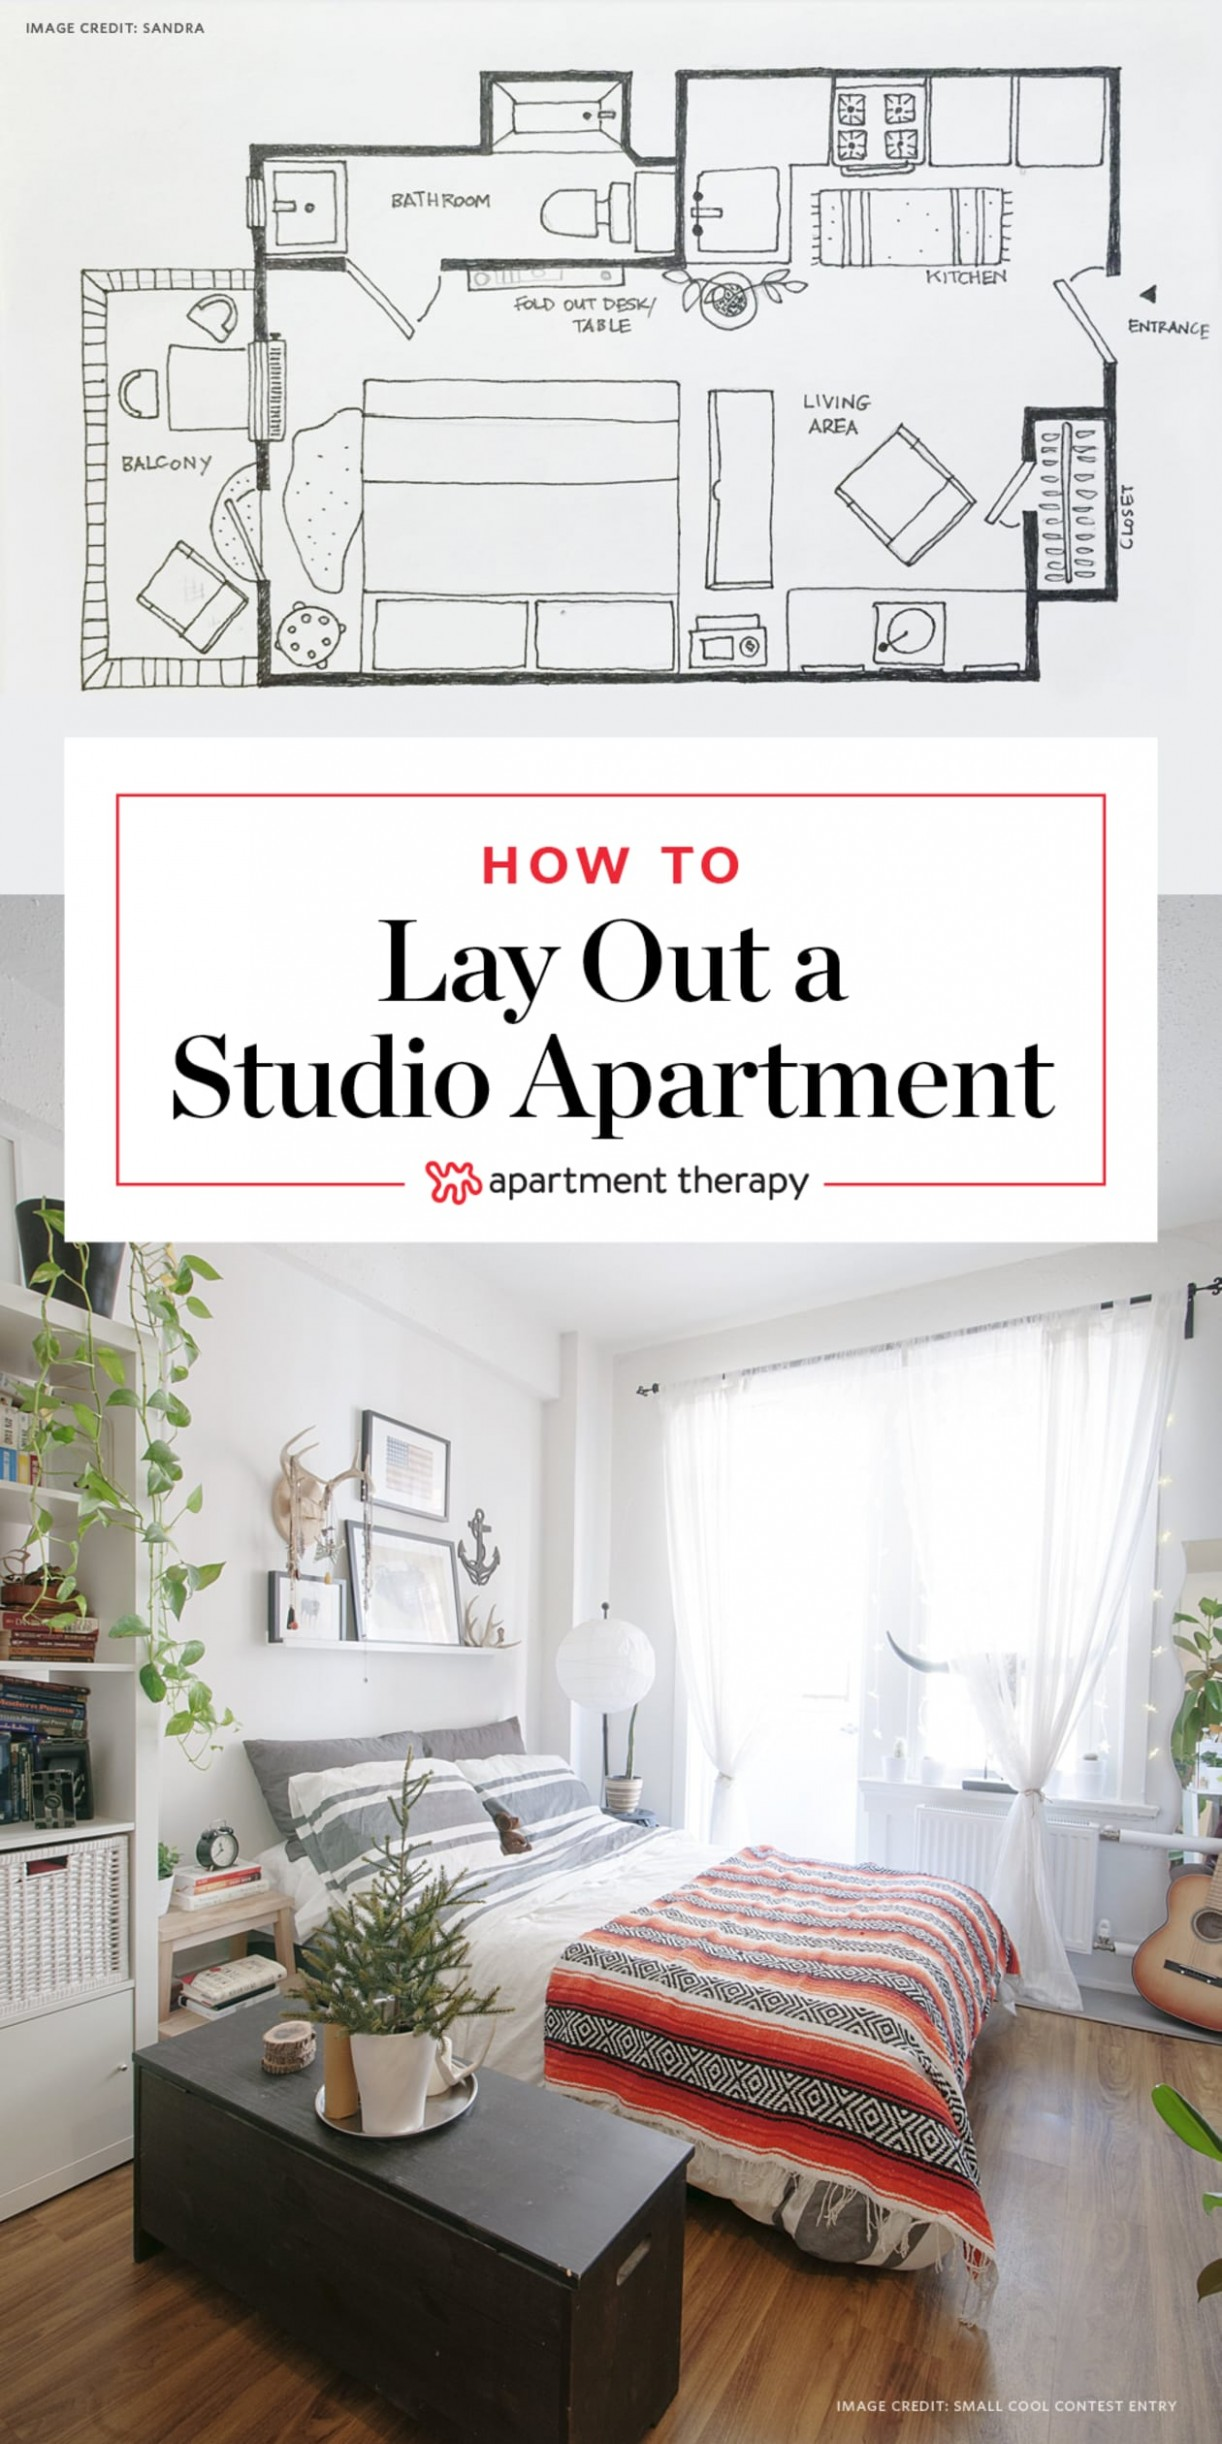 8 Ways to Lay Out a Studio Apartment  Apartment Therapy - Apartment Design Considerations